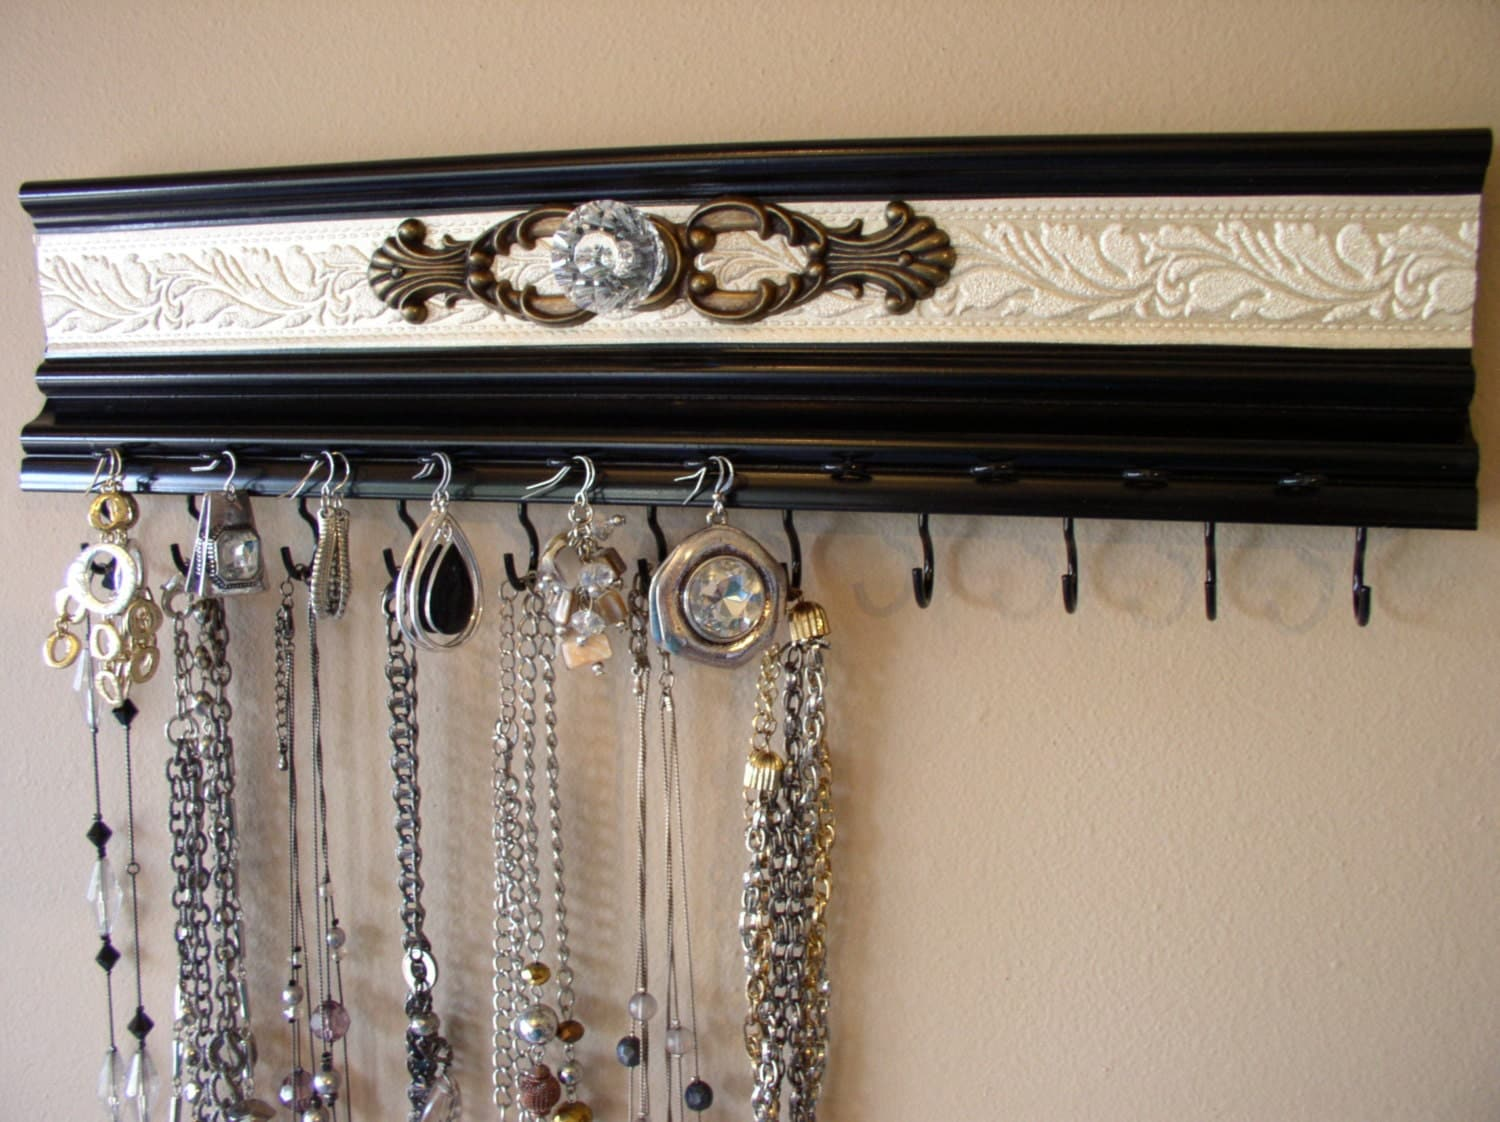 Black Jewelry Organizer Wall Hanger 11 Hooks For Necklaces